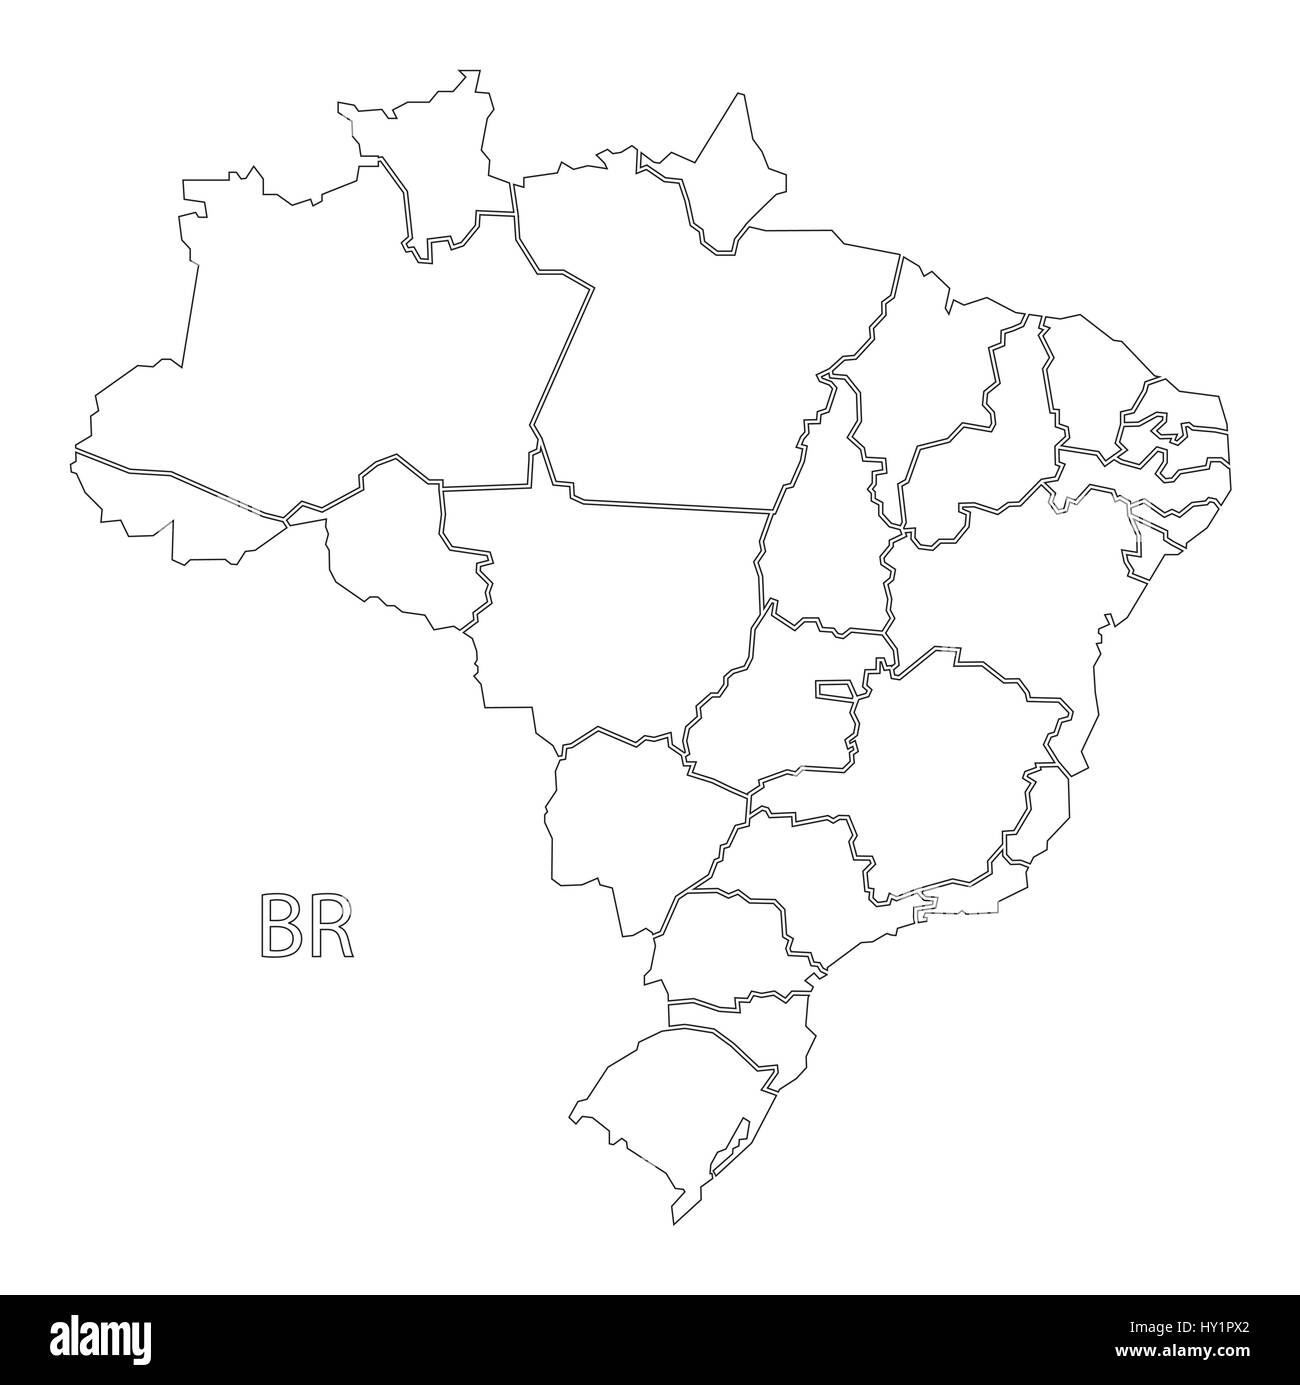 Brazil Outline Silhouette Map Illustration With Districts Stock - Brazil map illustration